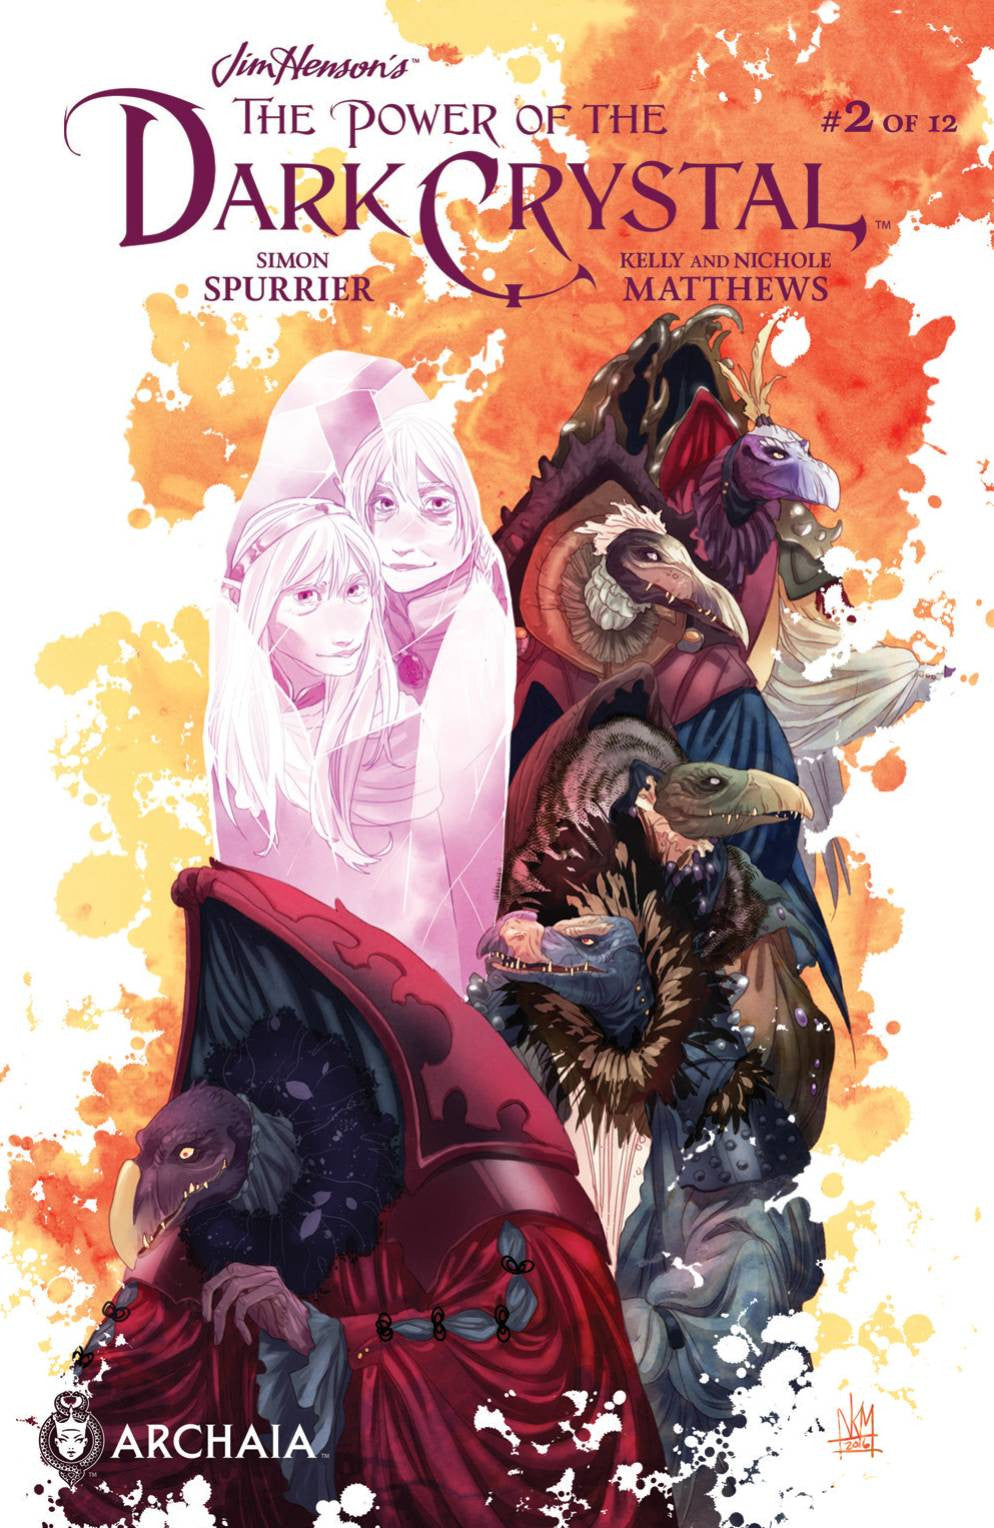 JIM HENSON POWER OF DARK CRYSTAL #2